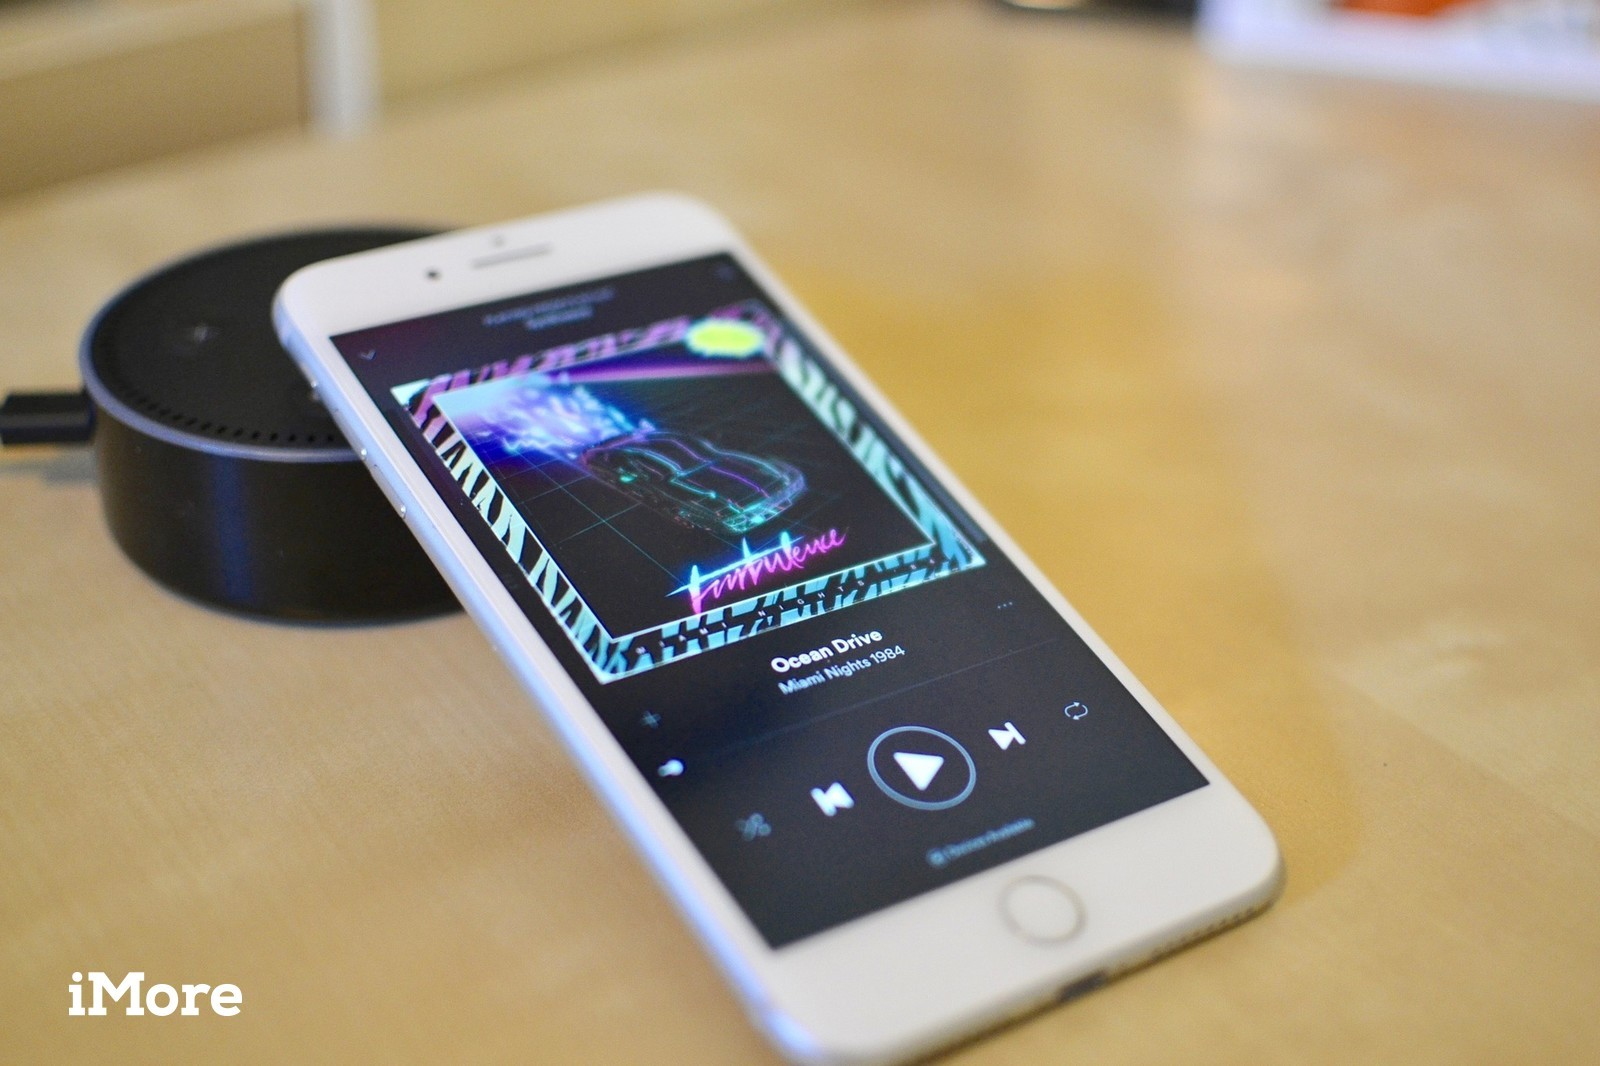 How to create and share playlists with friends on Spotify for iPhone